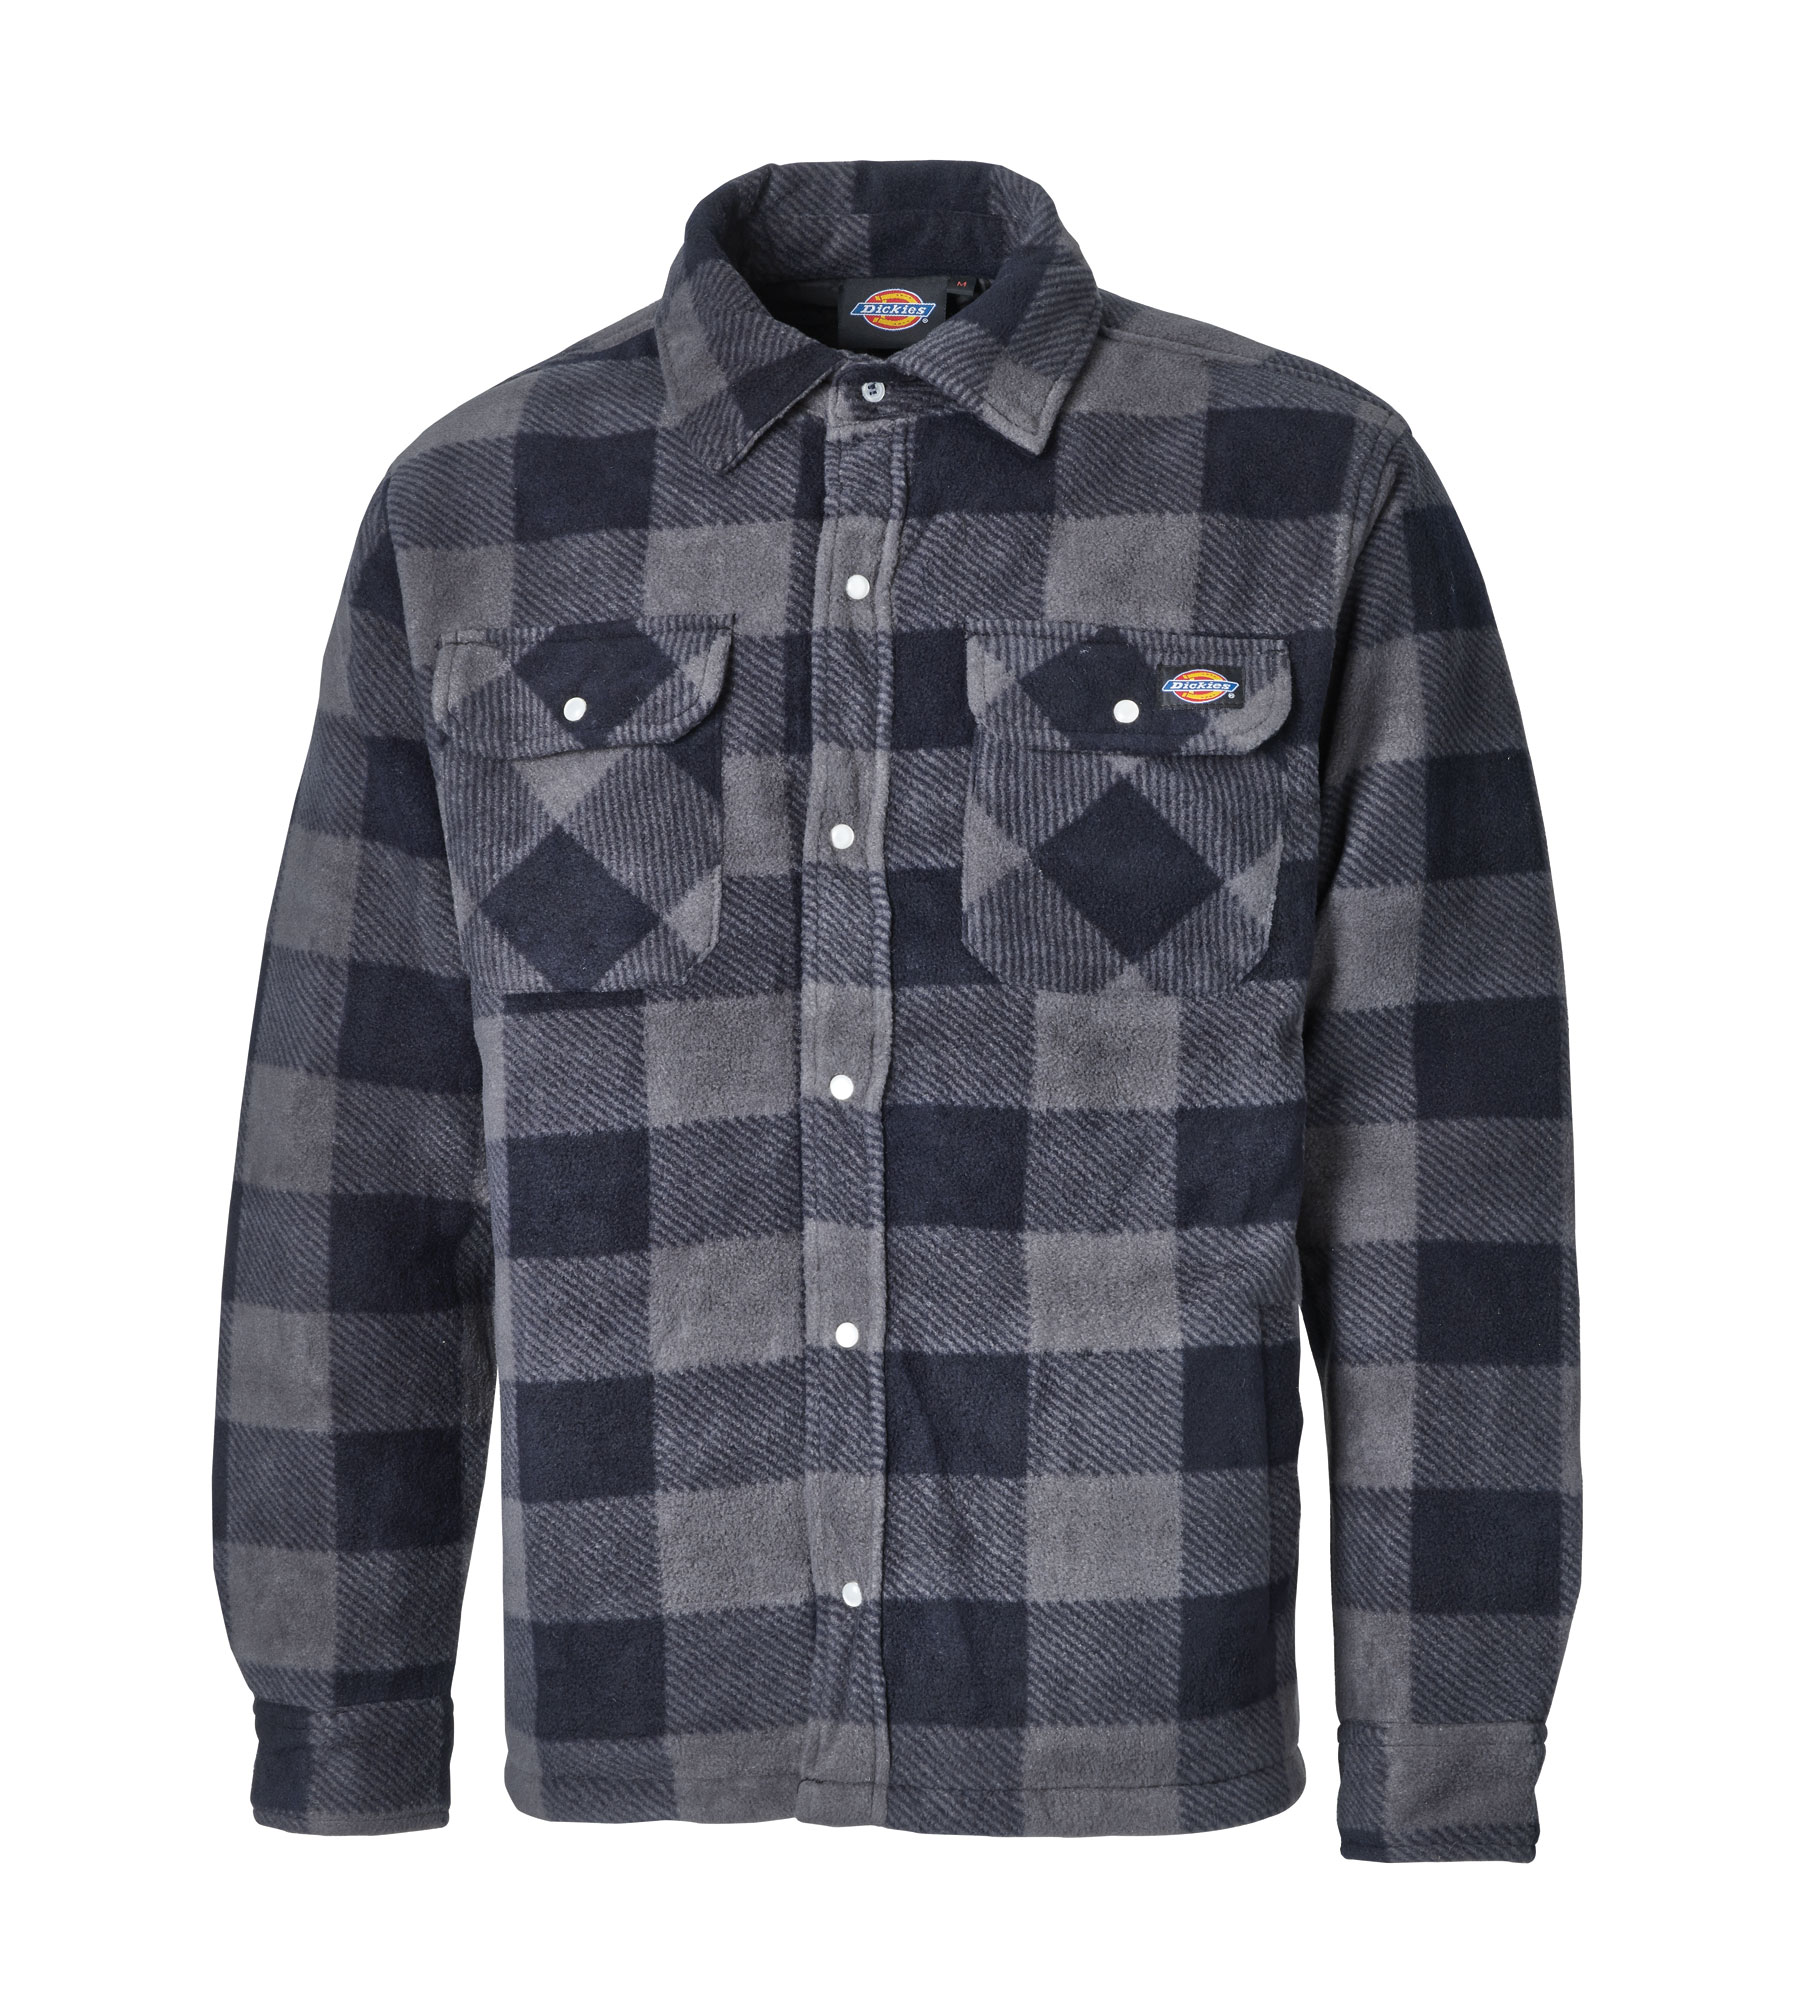 Dickies sh5000 portland padded shirt the safety shack for Dickey shirts clothing co